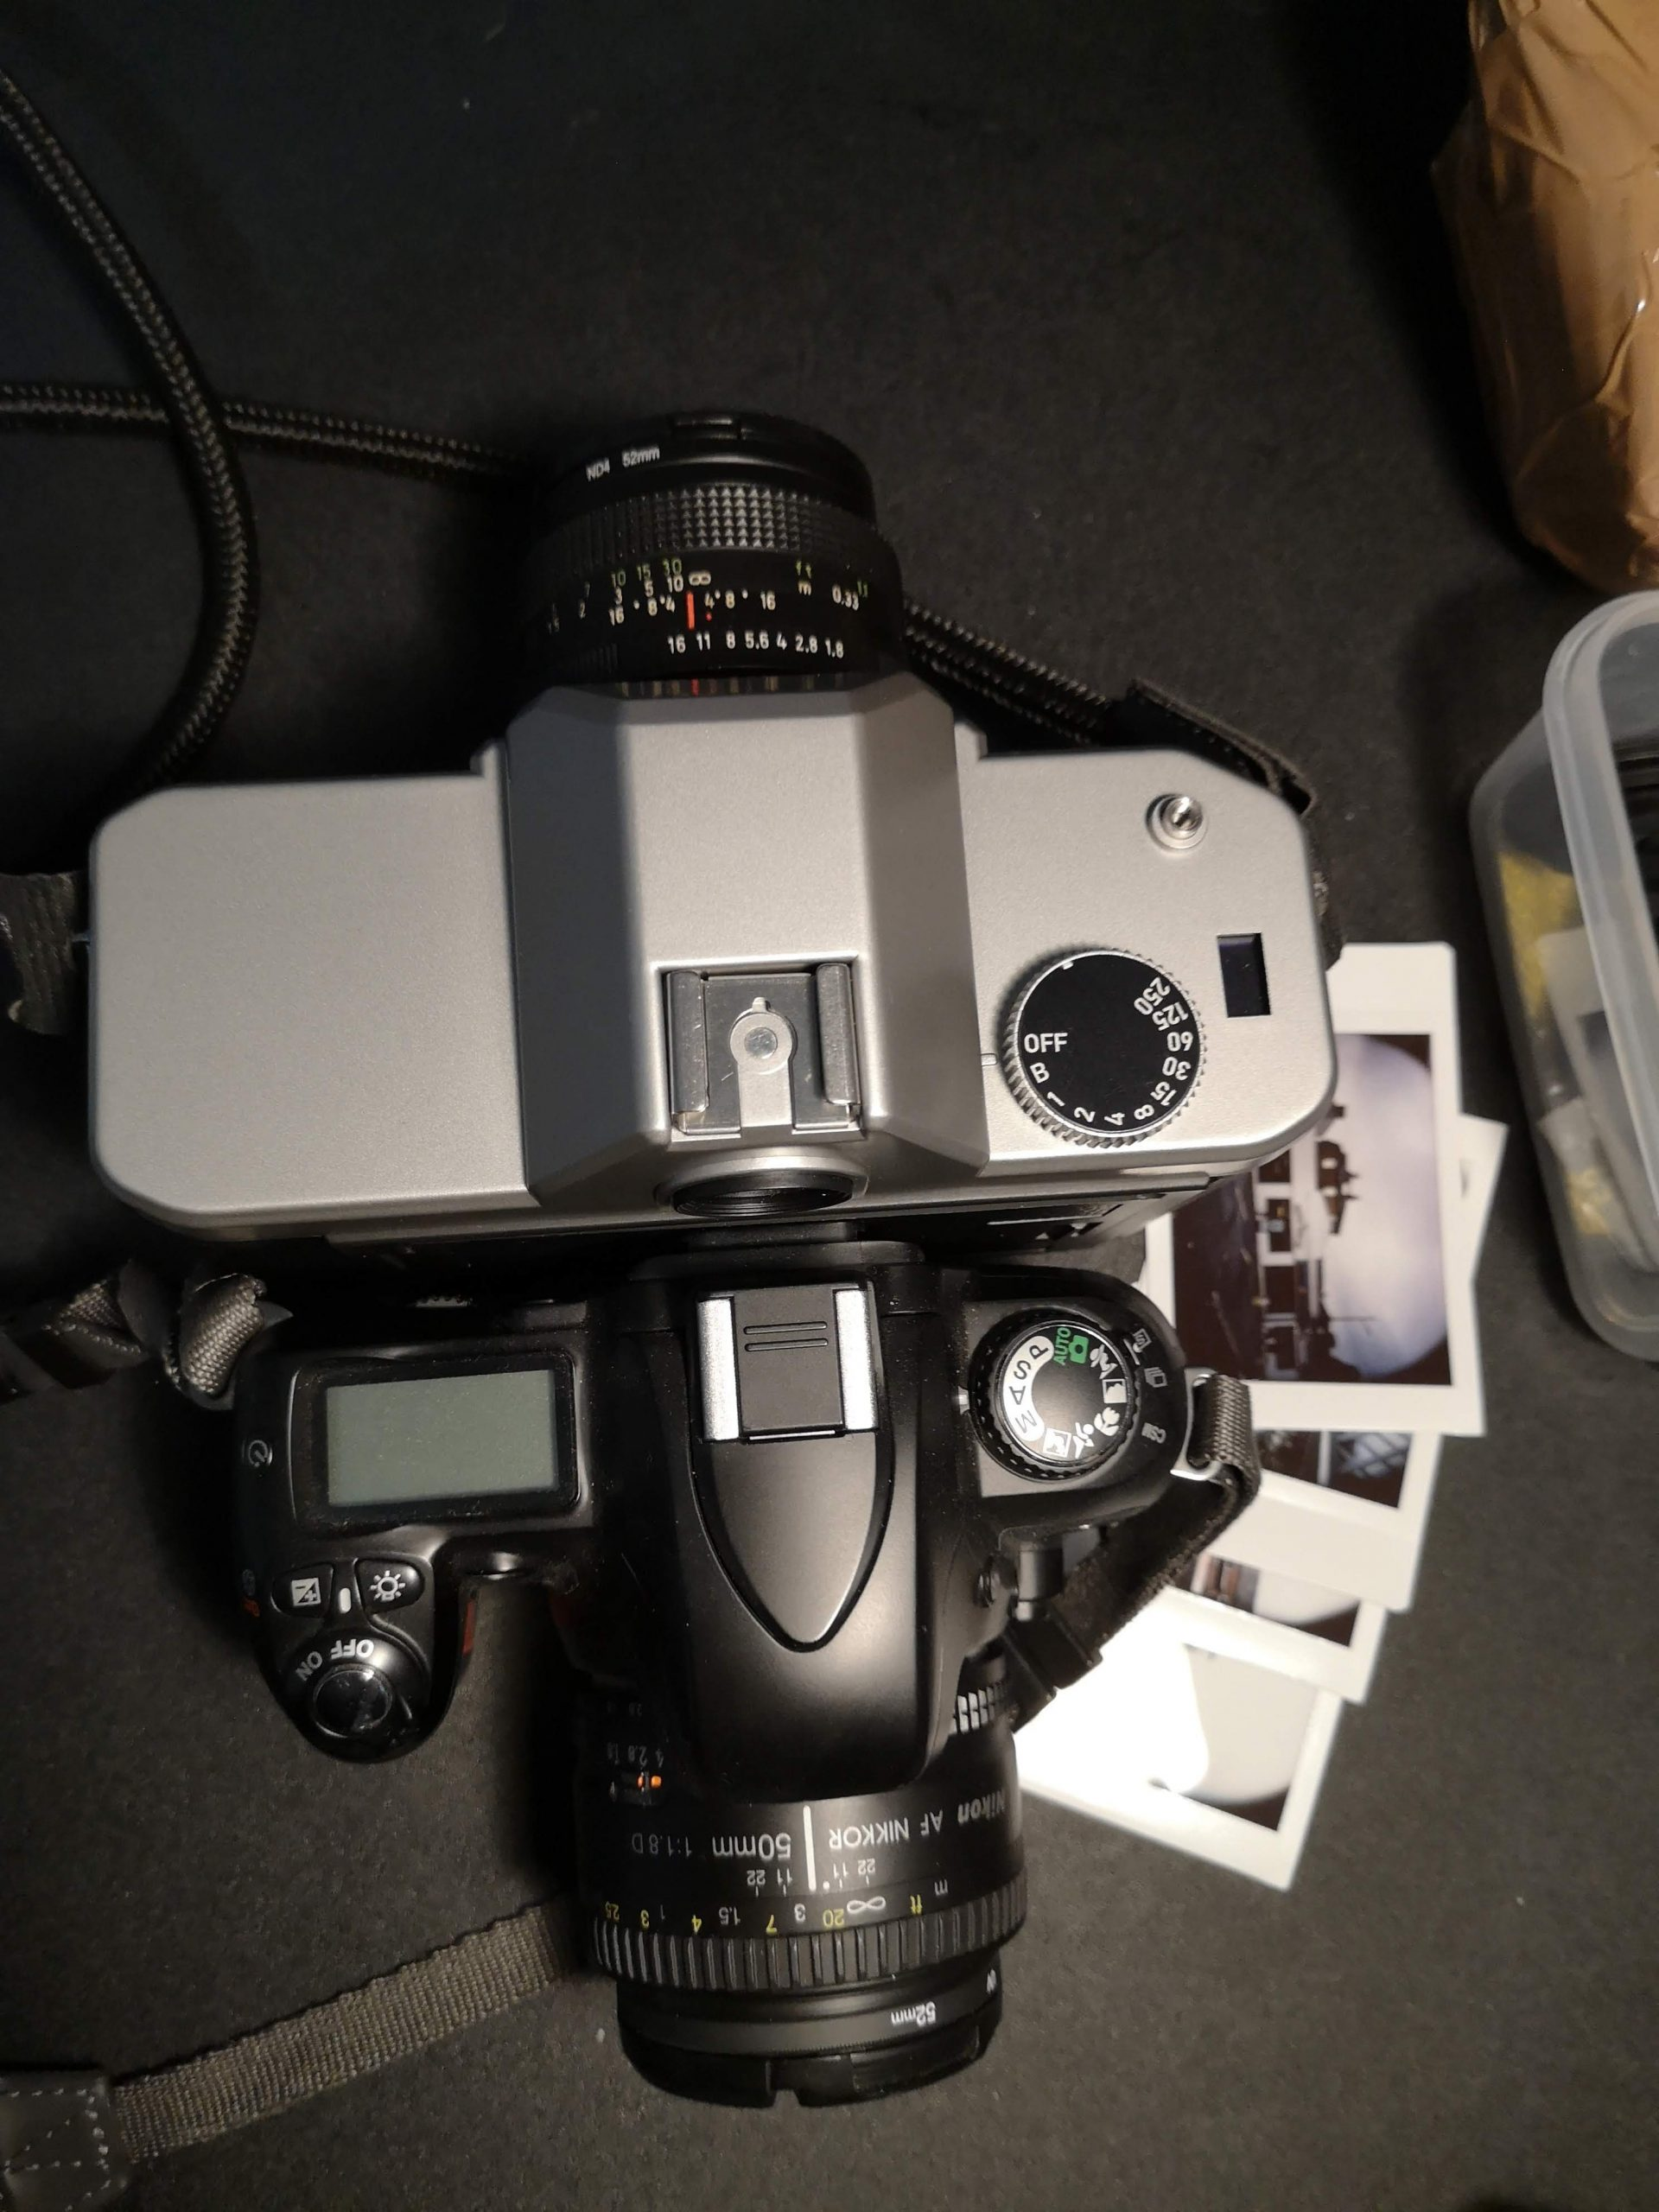 Nons SL42 (top) with a Nikon F75 (bottom) for scale